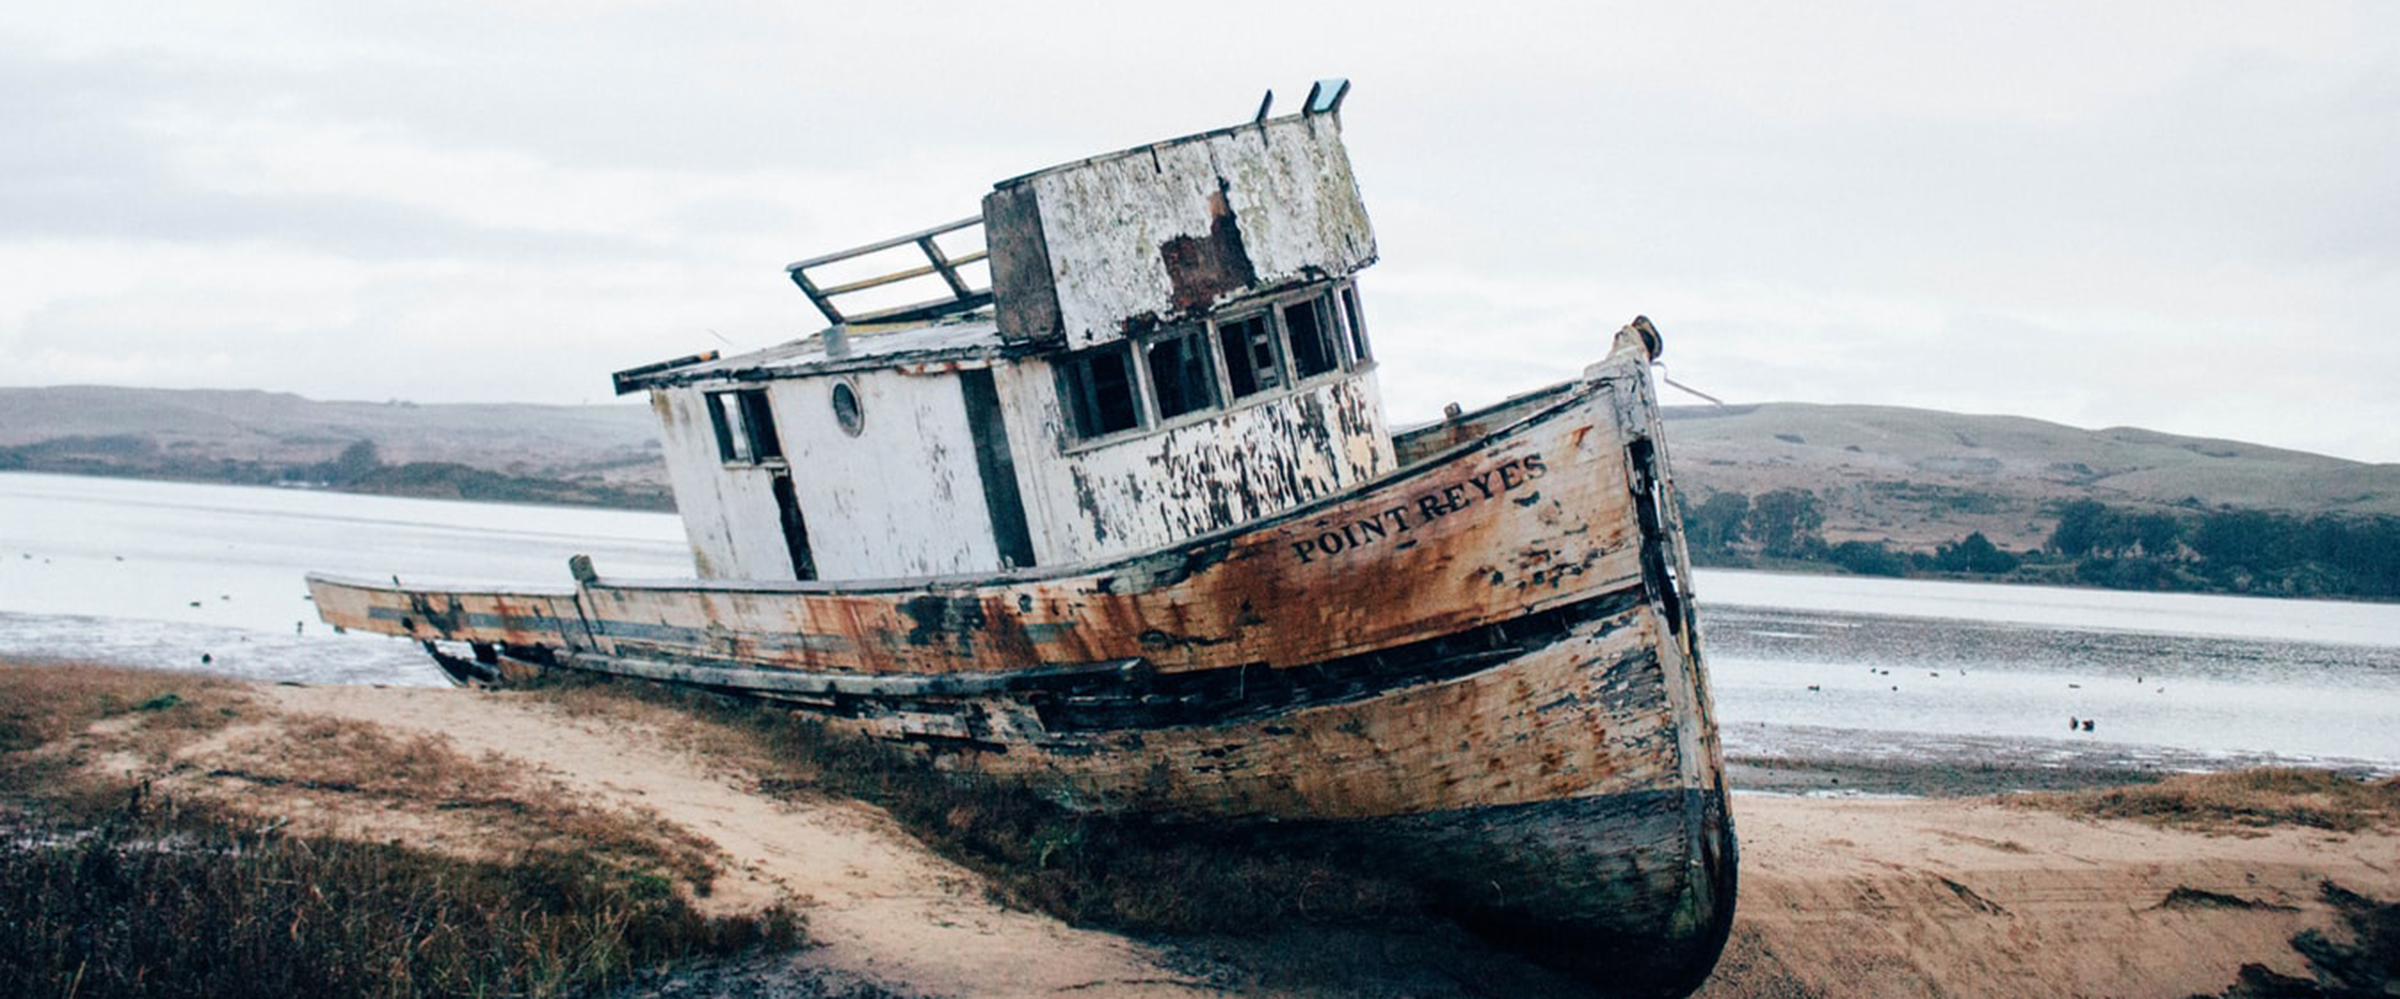 Cornwalls-unpaid-marina-andshipyard-fees-and-abandoned-boats-the-problems-and-the-solutions